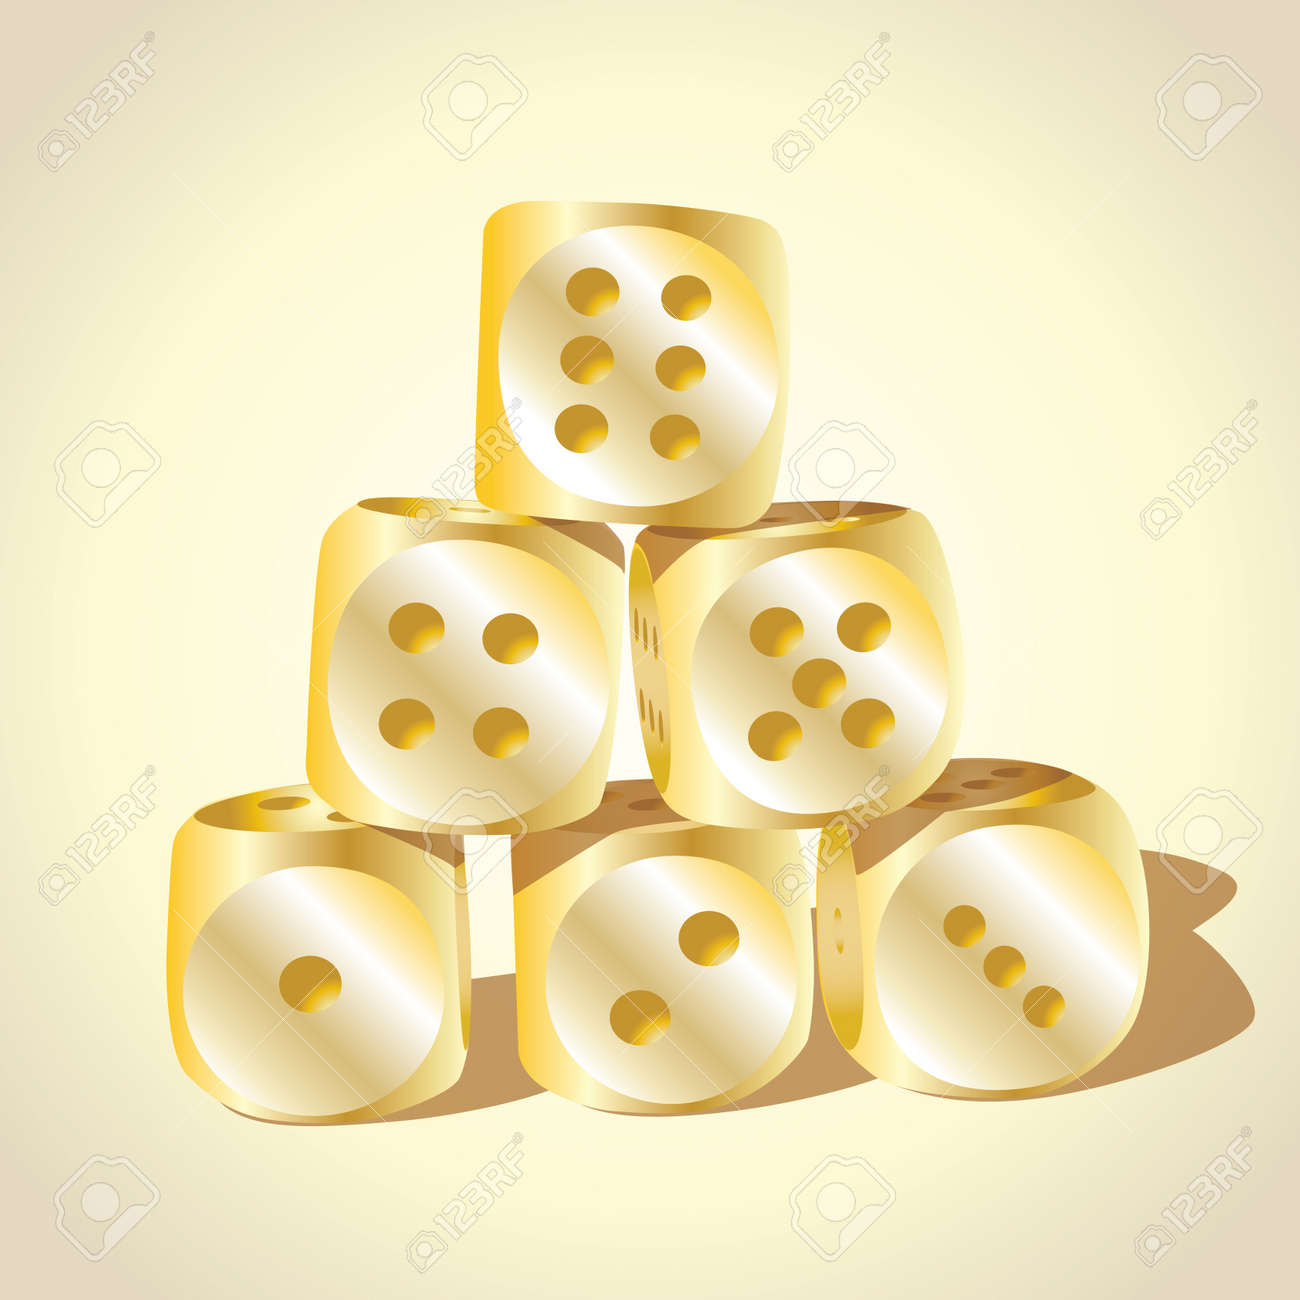 Six golden playing dices - illustration Stock Vector - 17181529